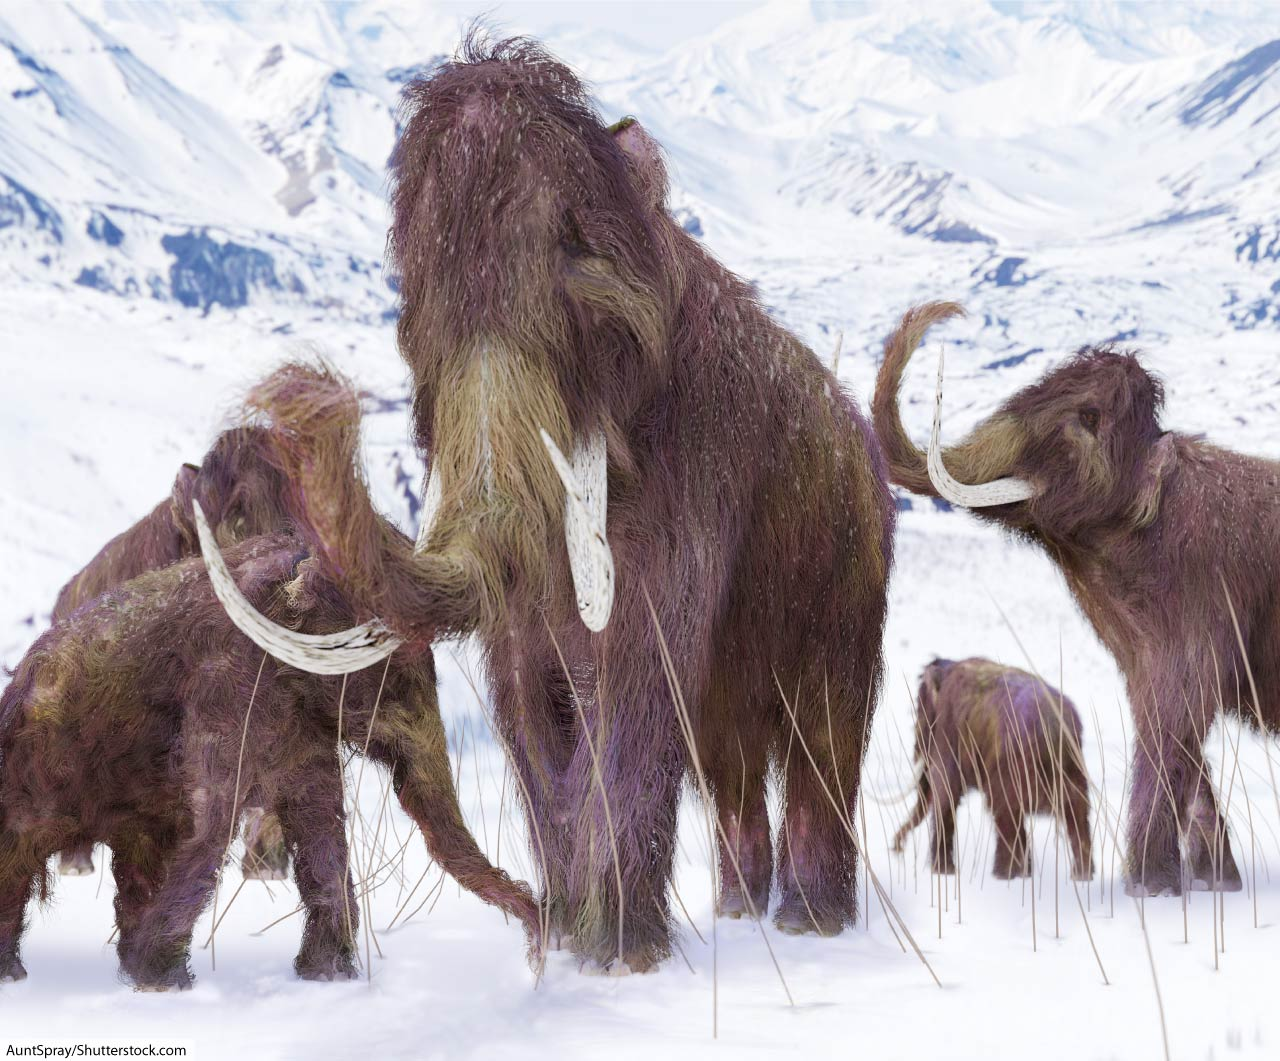 Woolly Mammoth Facts For Kids & Adults: Meet A Famous Ice ...